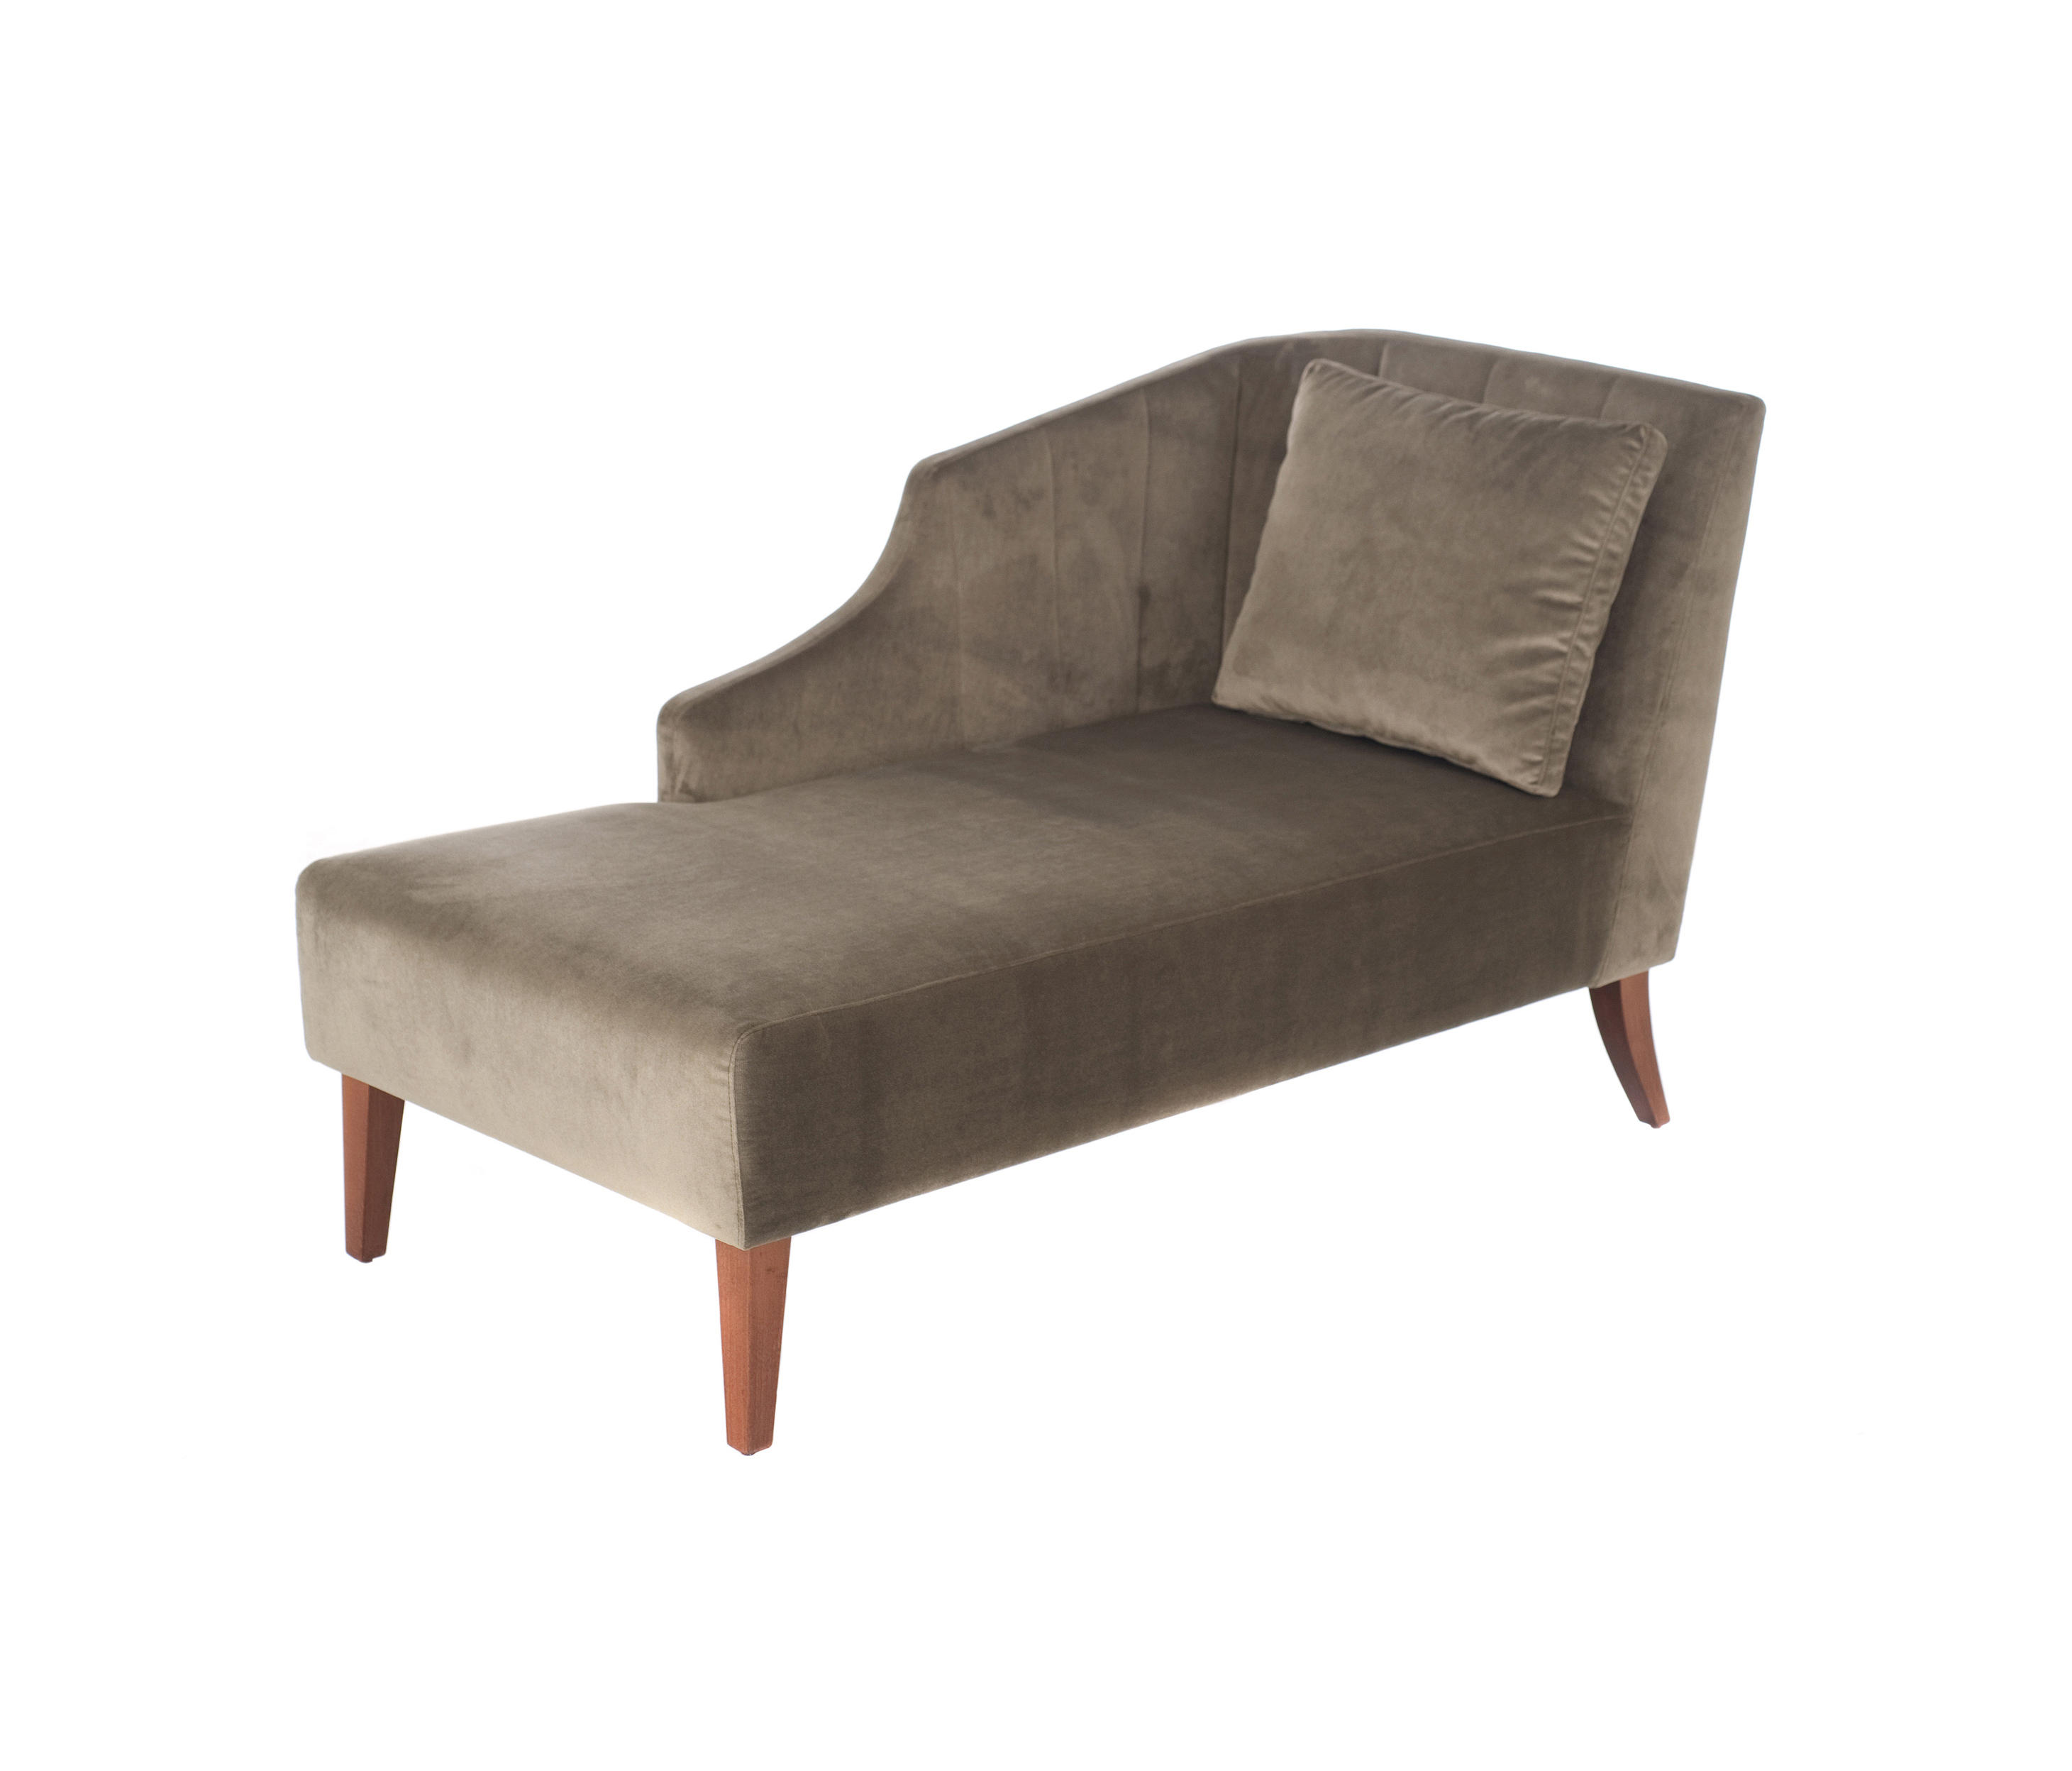 Aspen chaise longue recamieres from paulo antunes for Chaise longue chilienne